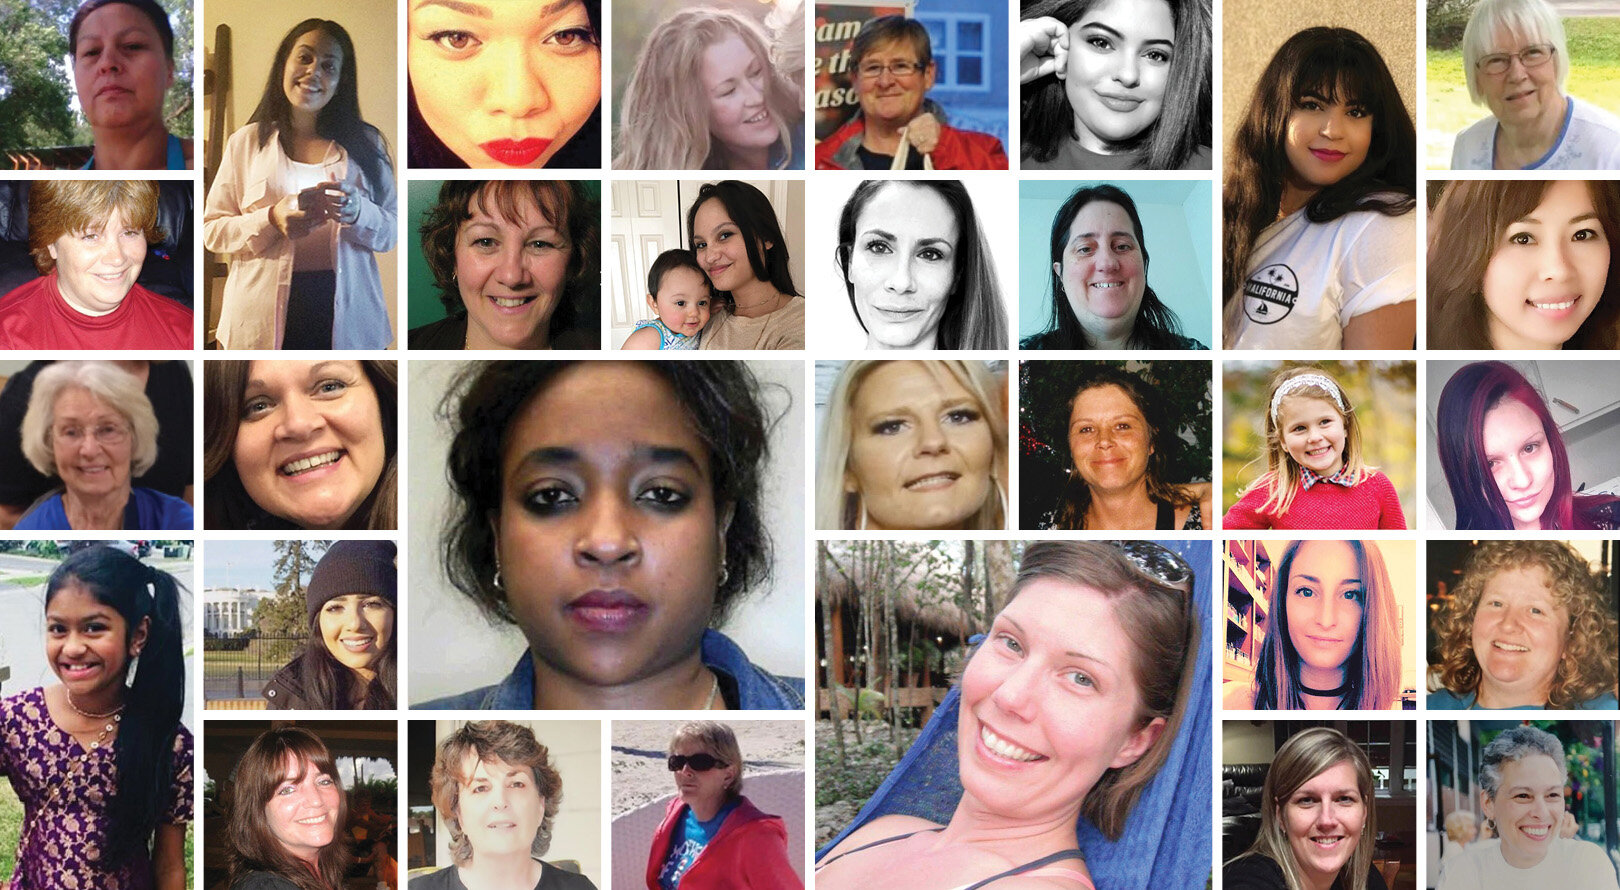 The women and girls pictured represent a tiny sample of those killed recently in Canada in confirmed or suspected incidents of domestic violence by men. Some of these cases are still before the courts. Their names are included at the end of this article.